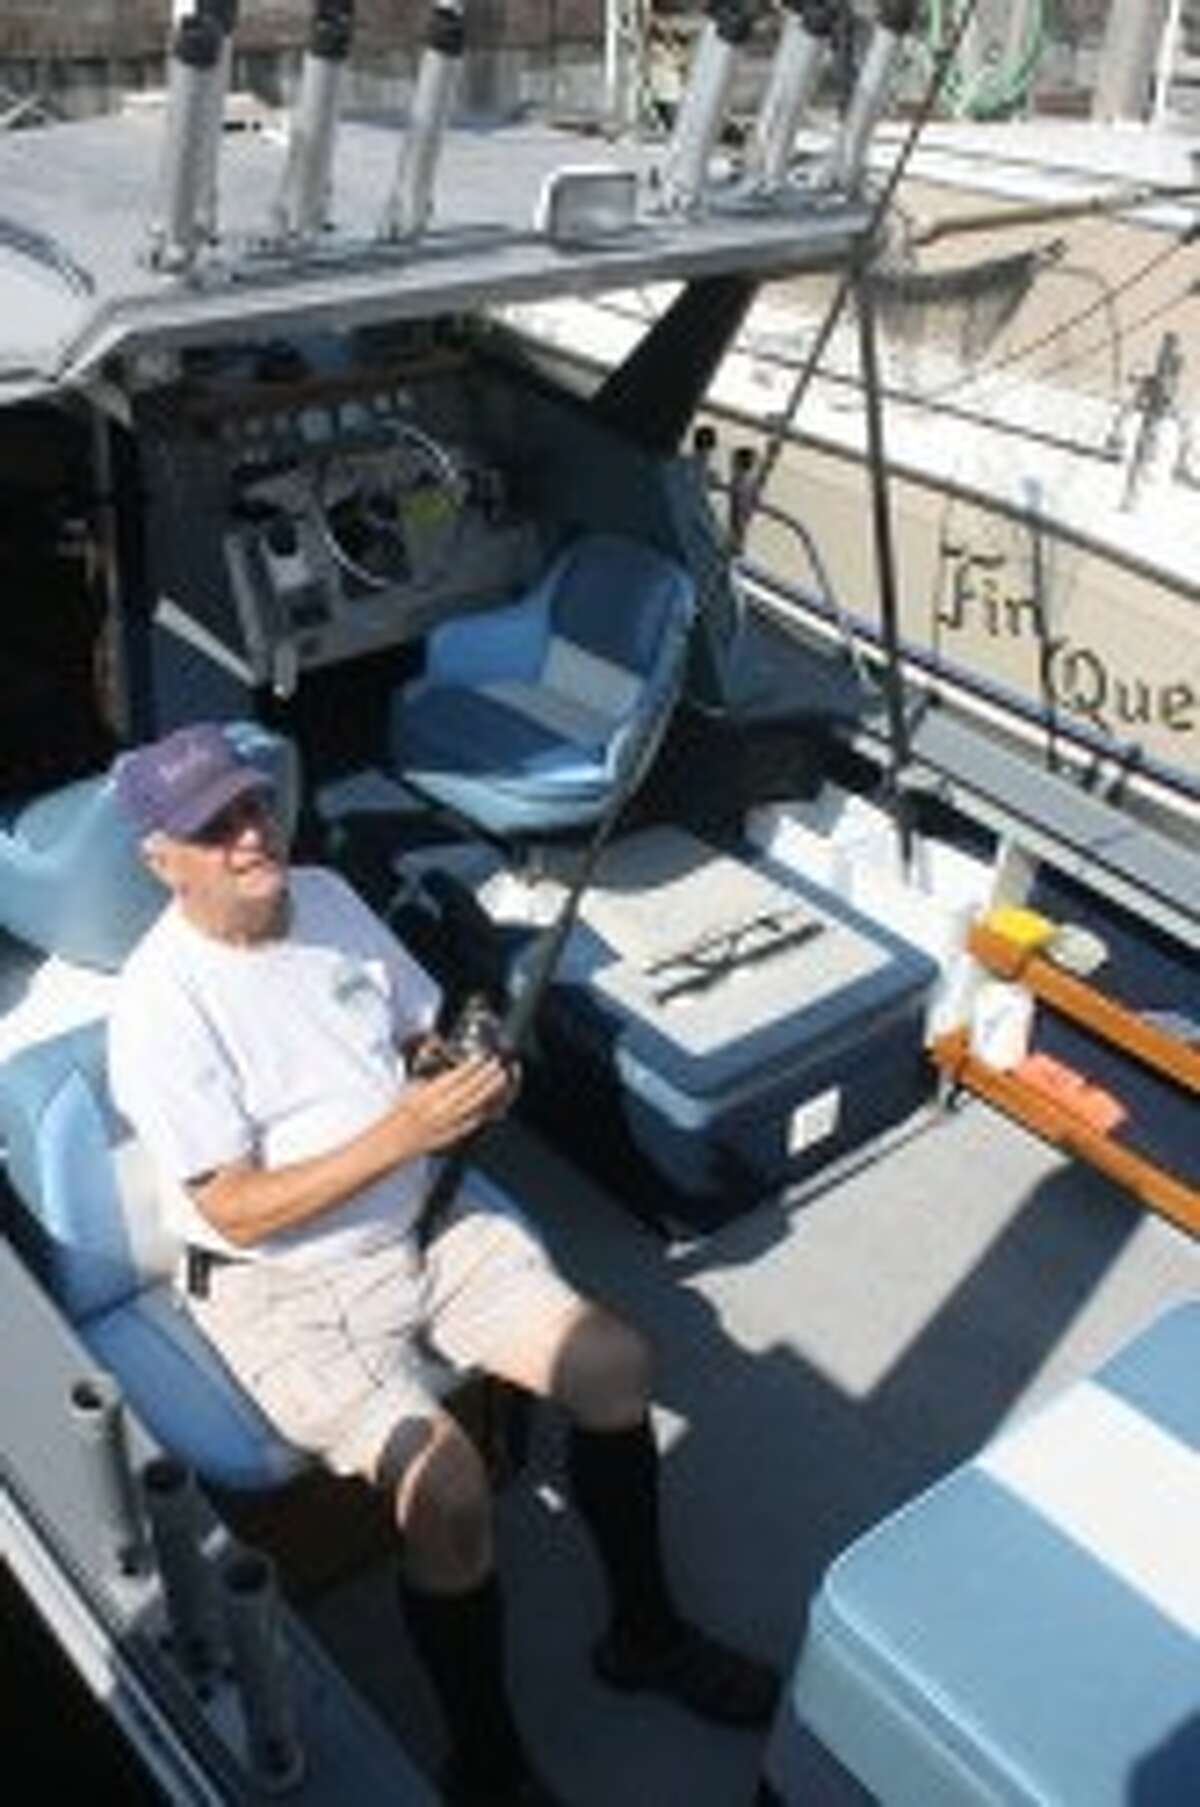 Mike Mogg gets ready for a fishing trip out of Shipwatch Marina. (John Raffel/Pioneer News Network)